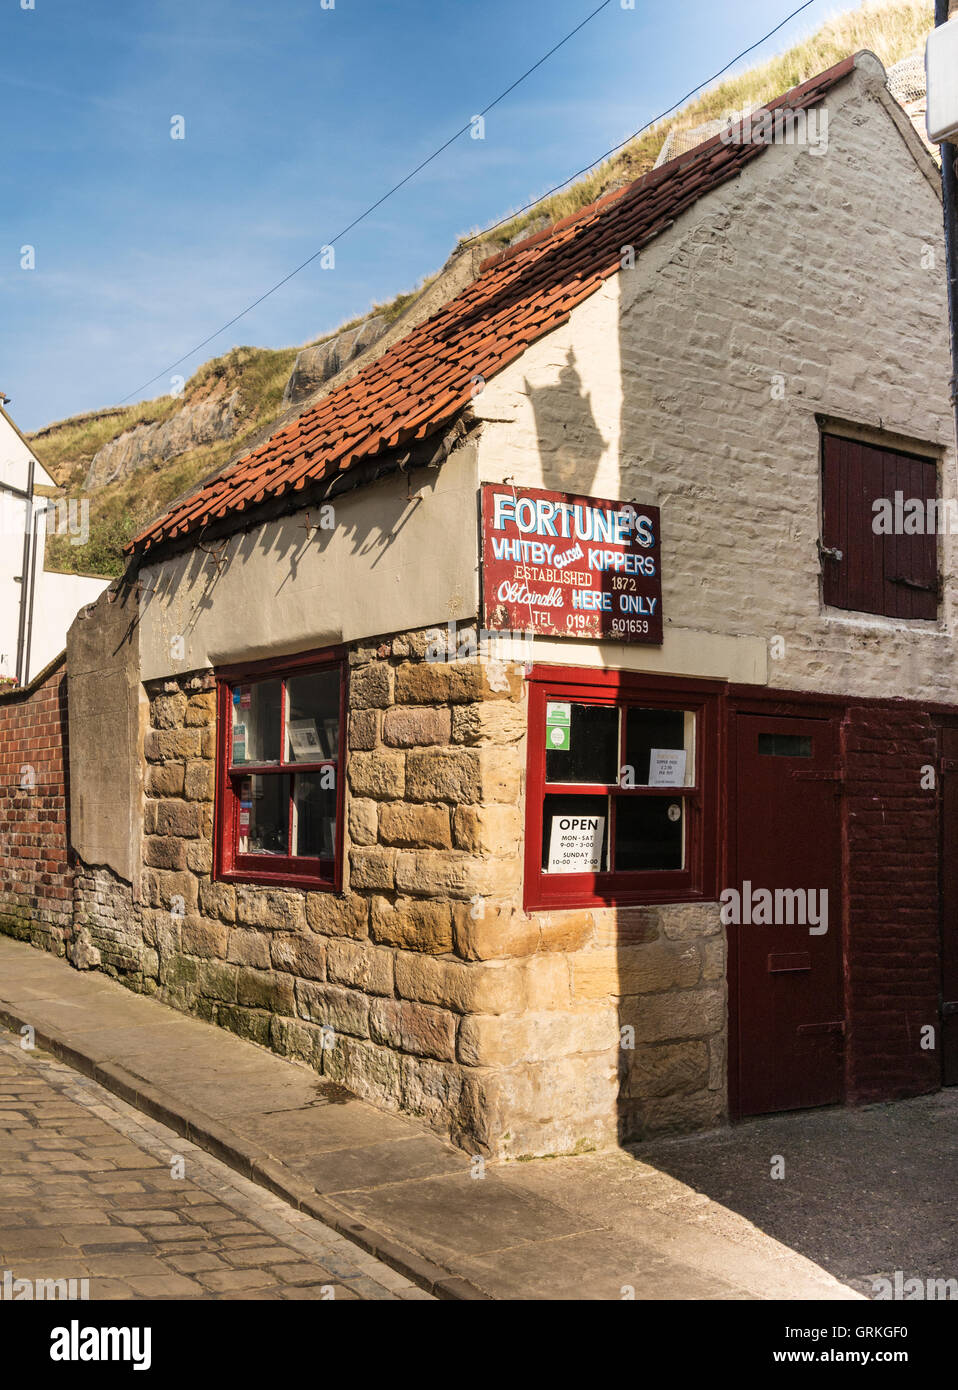 Fortunes Kipper Shop and Smokery Whitby Yorkshire UK - Stock Image